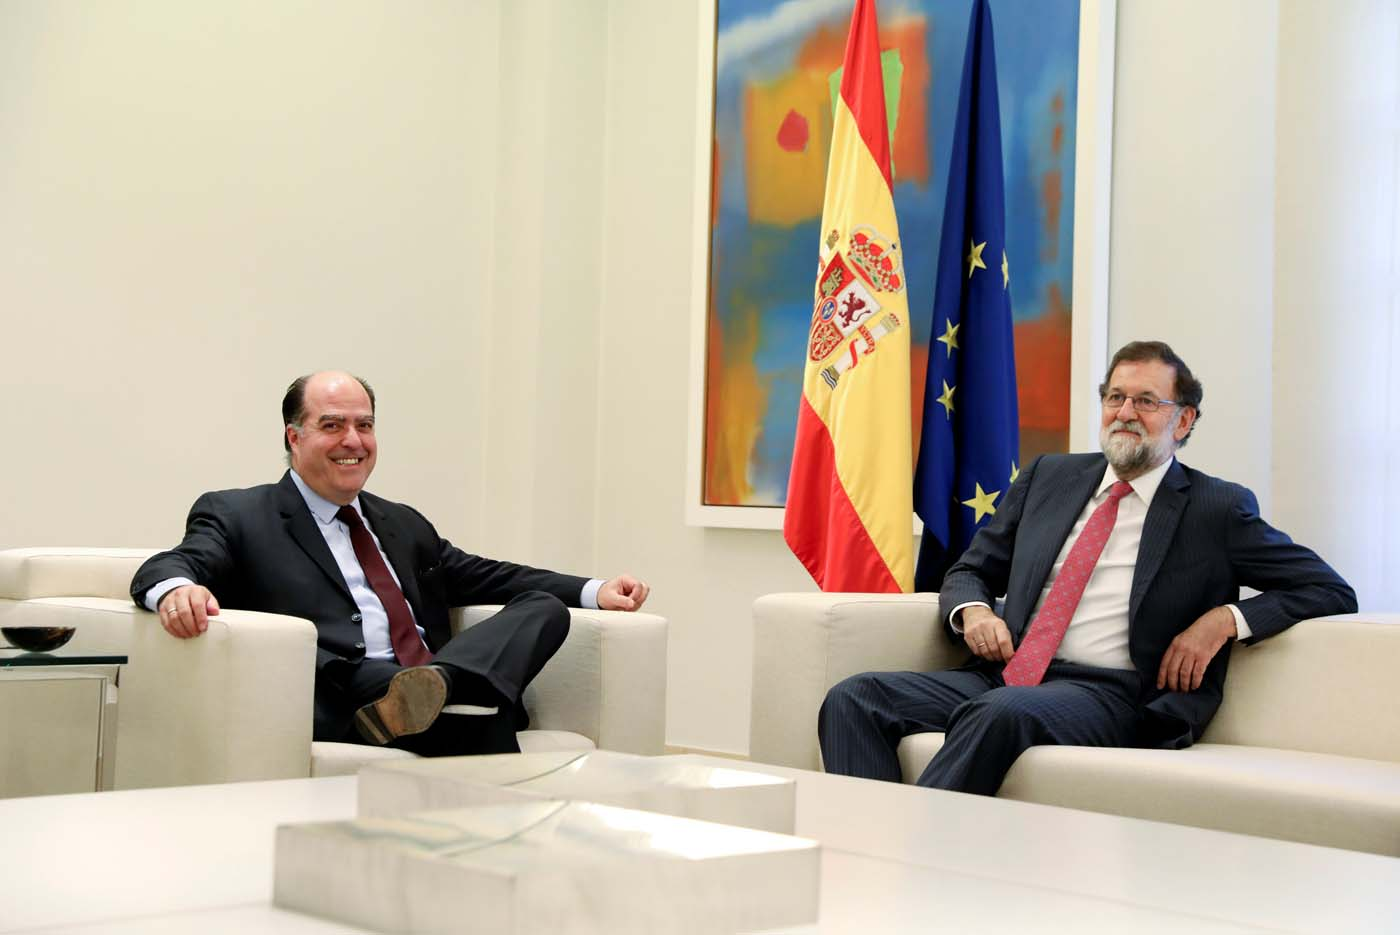 Spanish Prime Minister Mariano Rajoy and Julio Borges, president of the National Assembly and lawmaker of the Venezuelan coalition of opposition parties (MUD), pose as they meet at Moncloa Palace in Madrid, Spain, September 5, 2017. REUTERS/Susana Vera